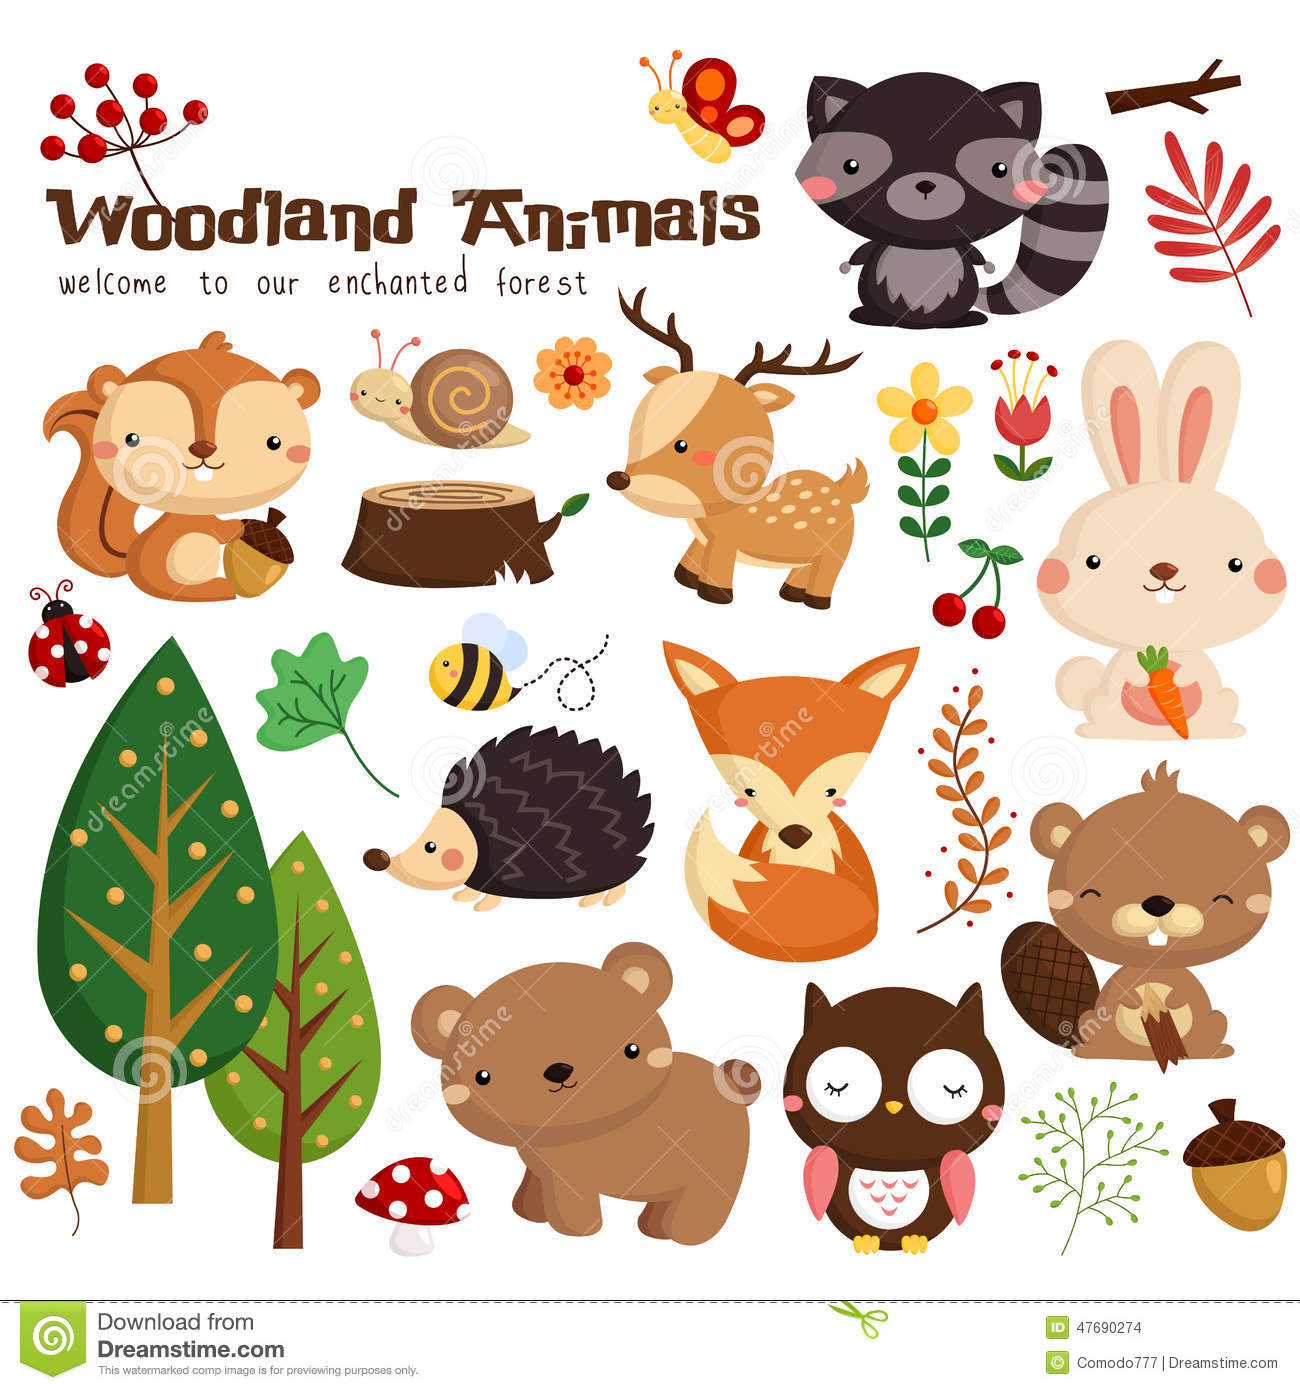 Zoo scene coloring pages zoo scene coloring pages page 1 coloring - Woodland Animal Vector Set Stock Vector Image 47690274